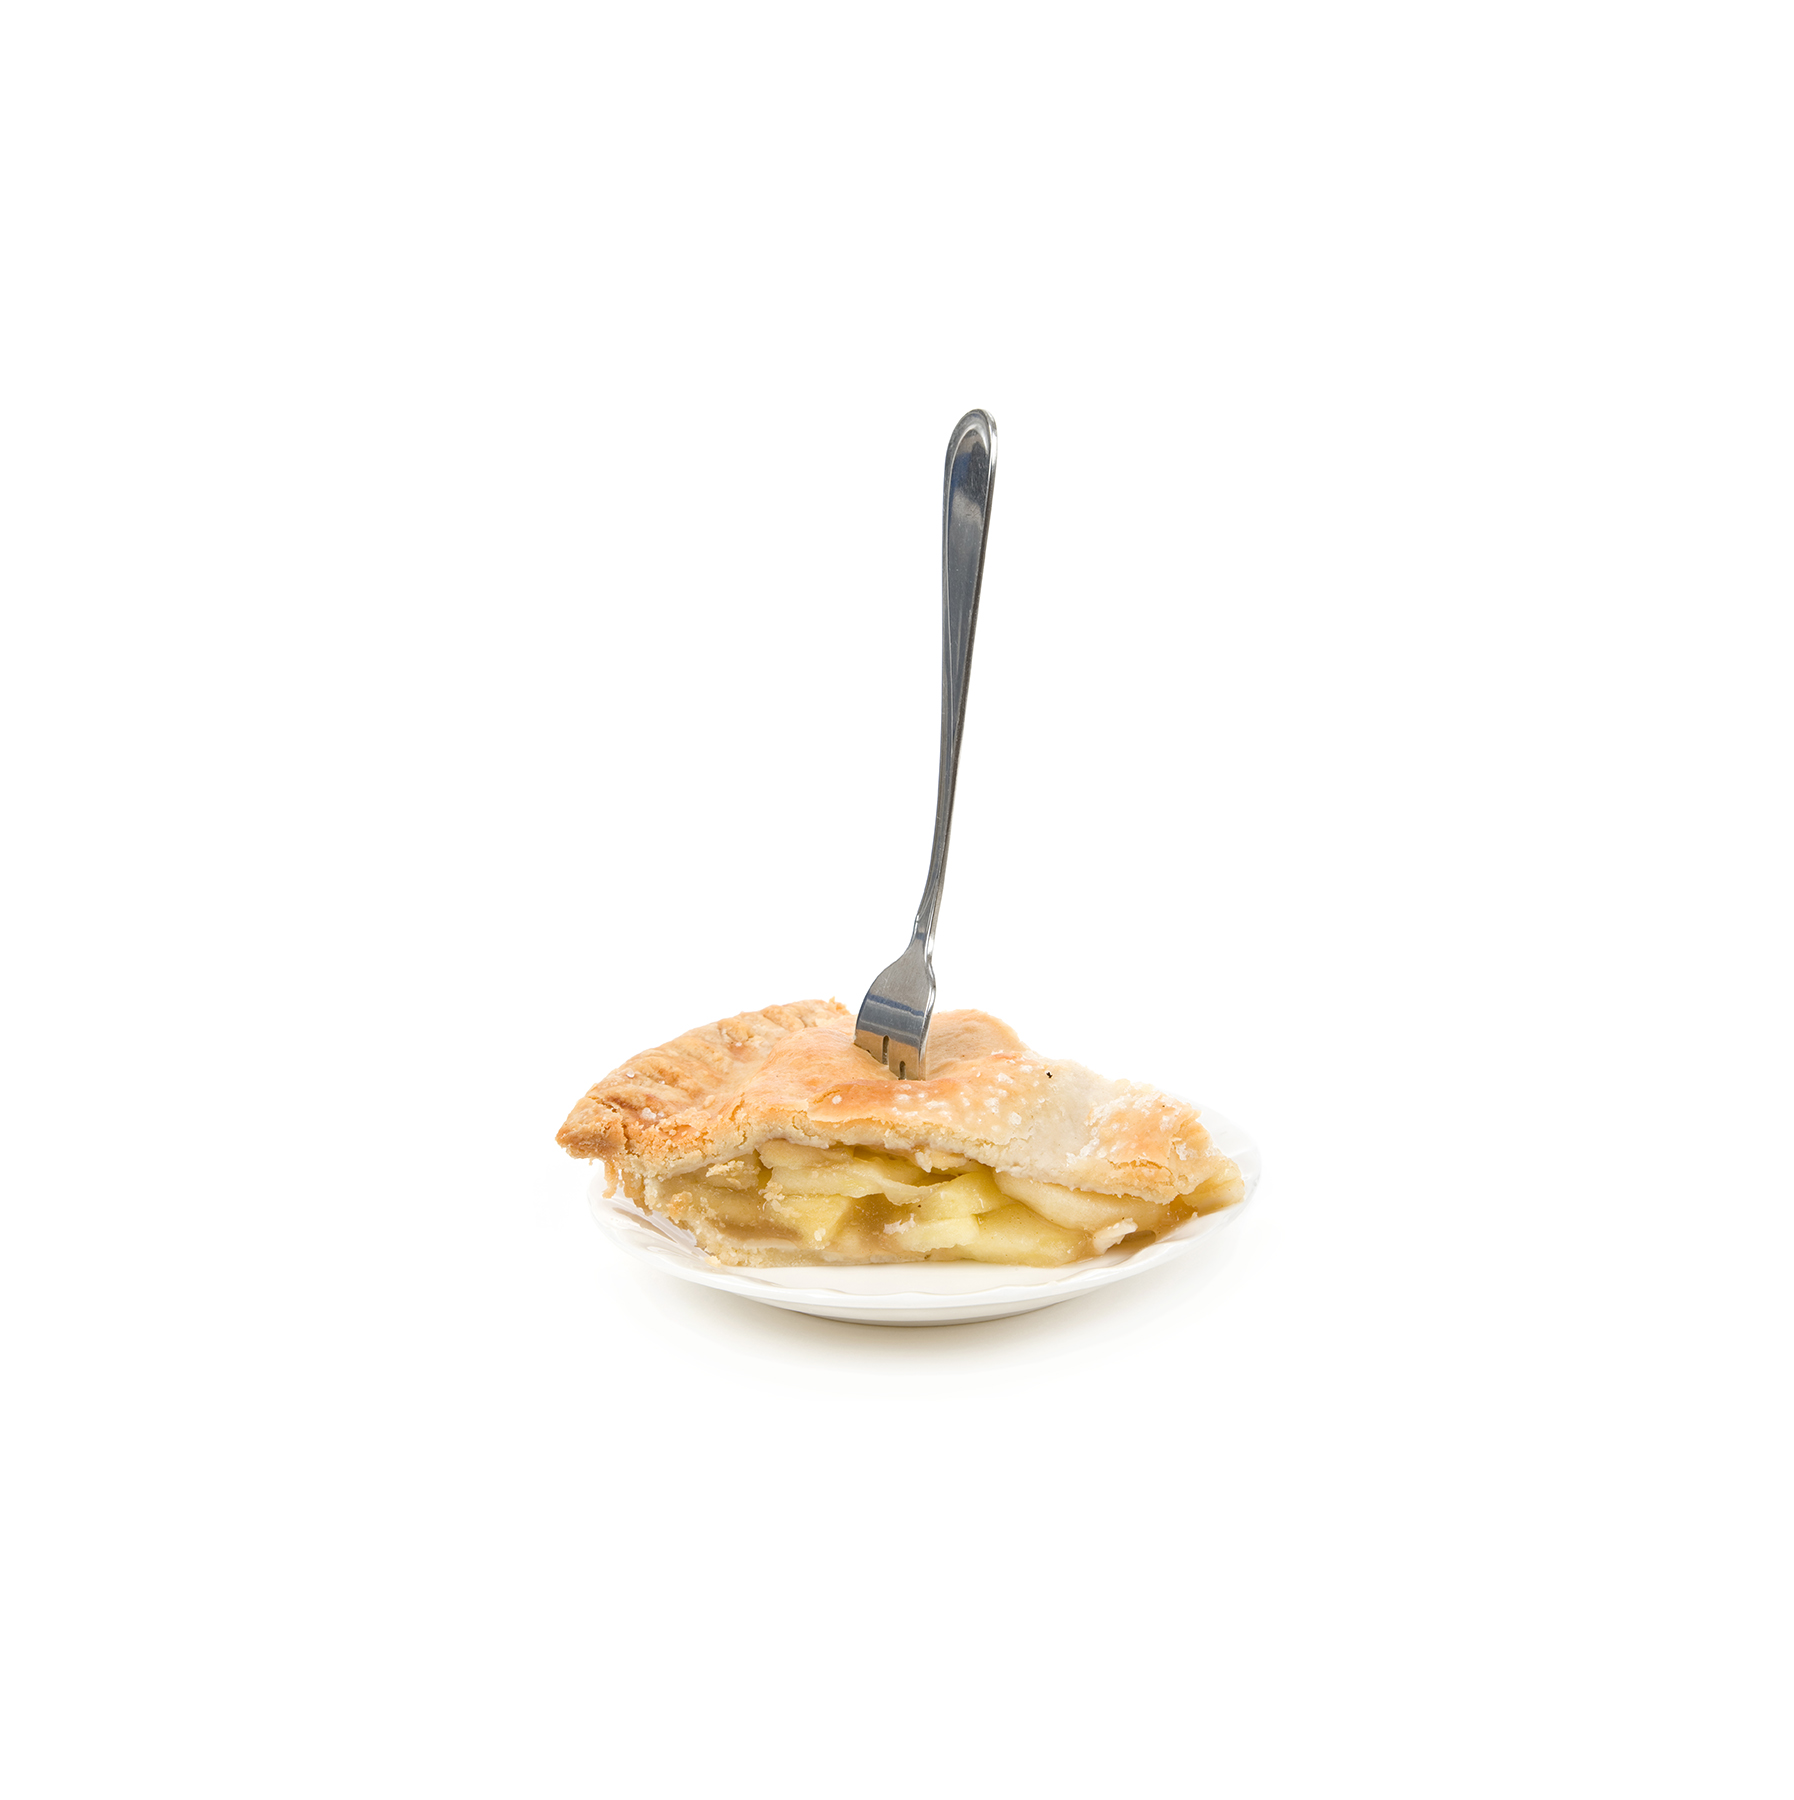 Apple pie slice with fork